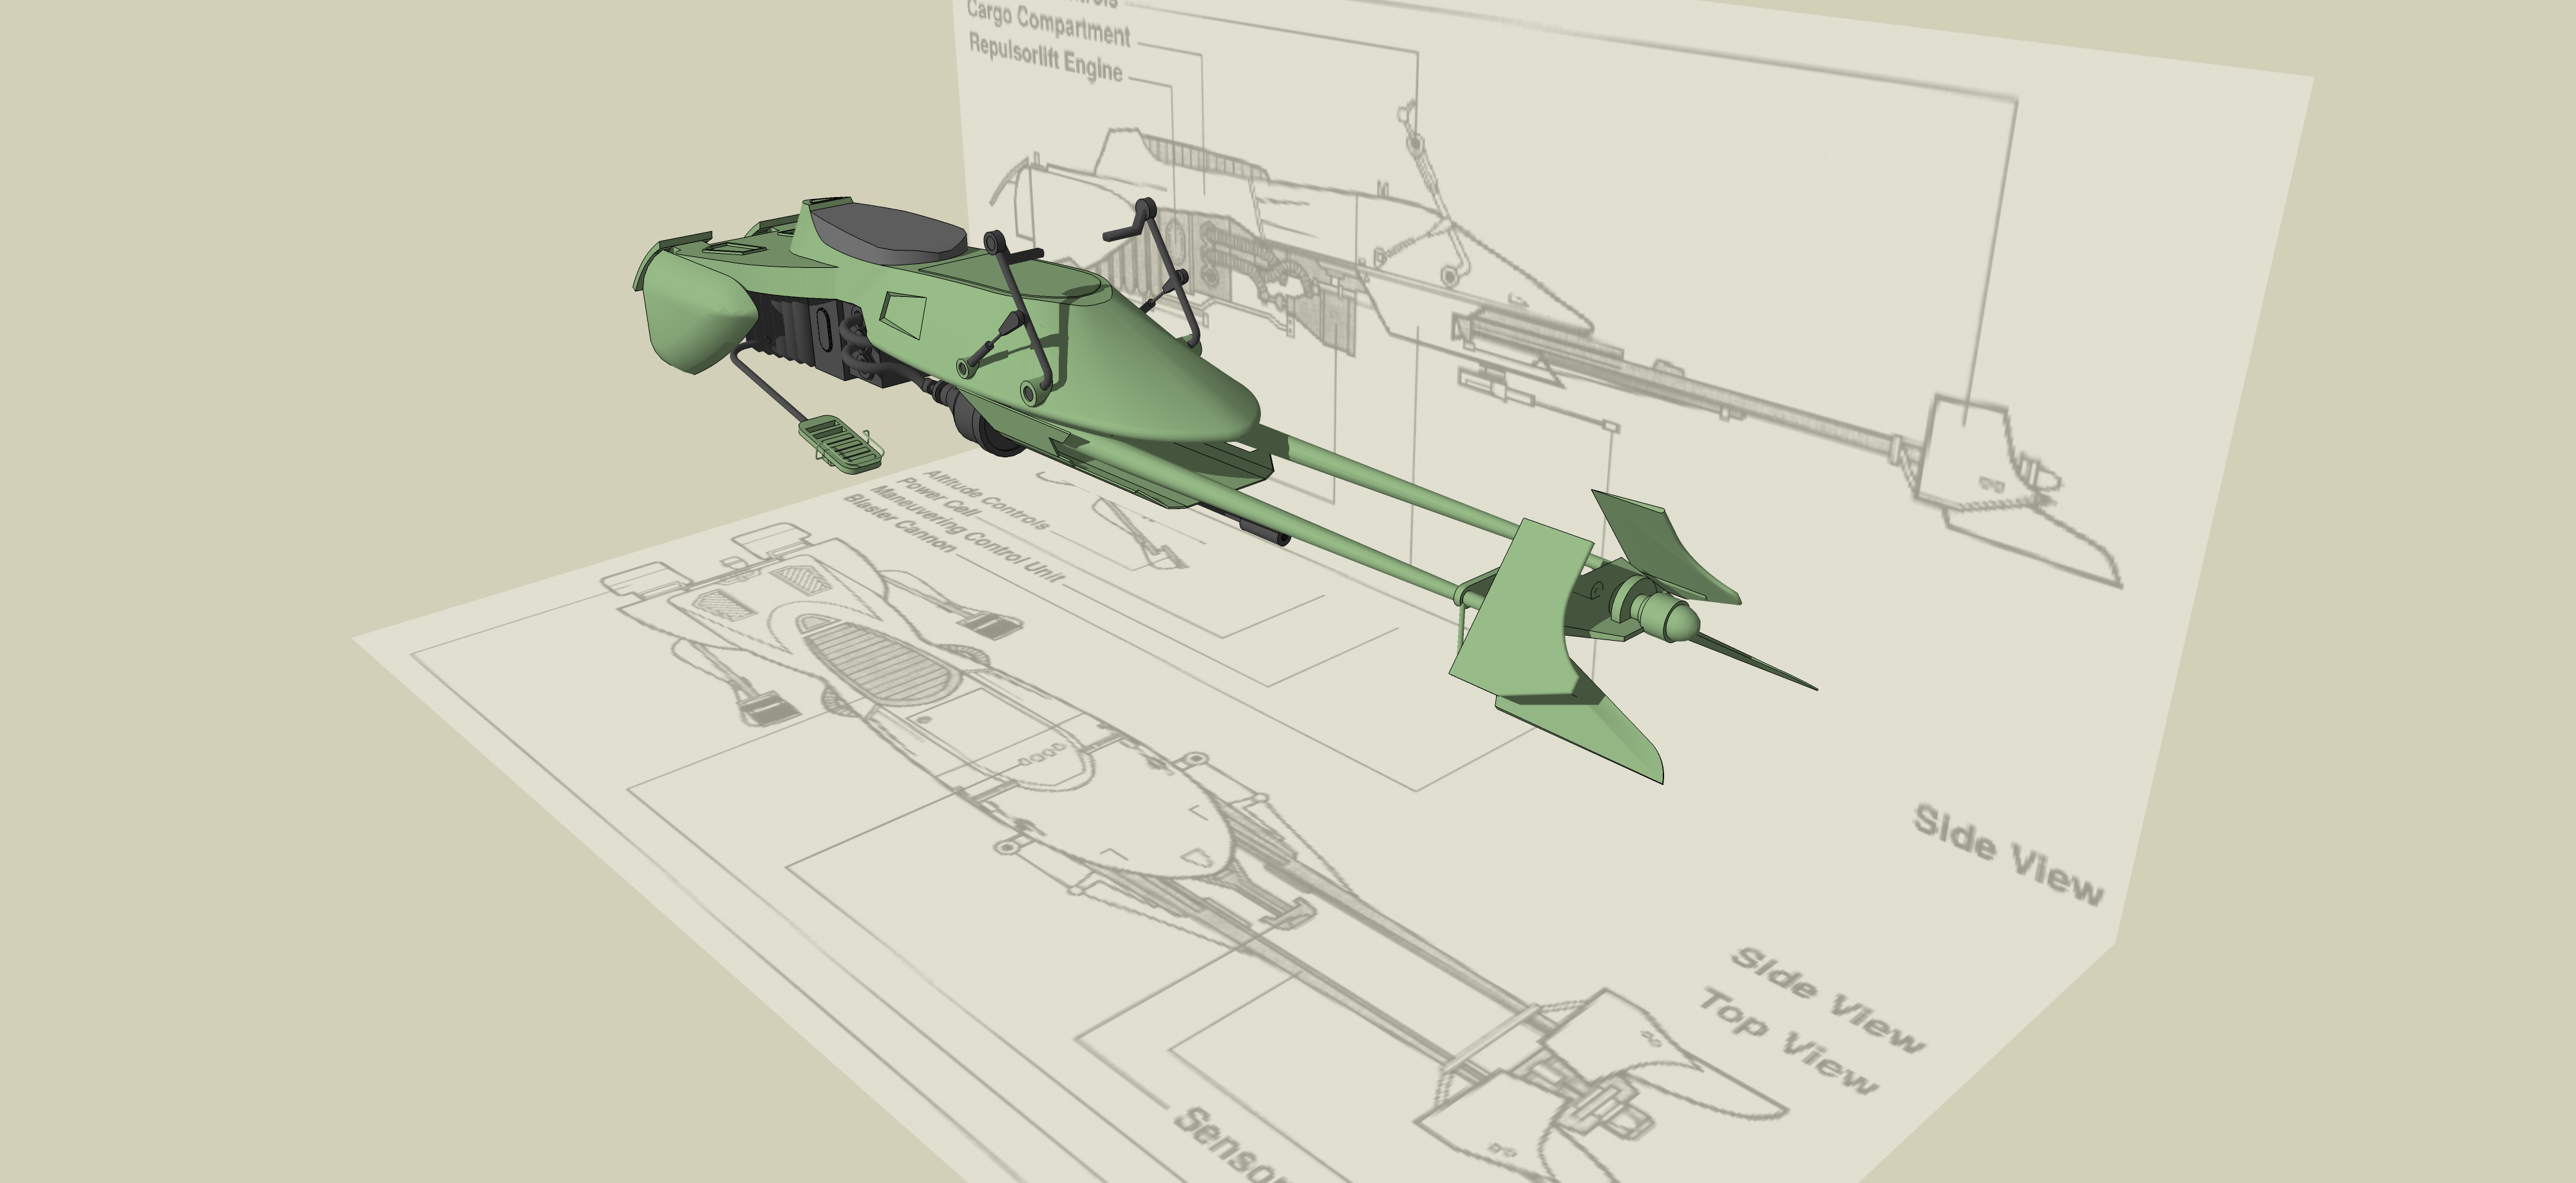 Detailed Process for Creating model of Shuttle, Speeder and Watch